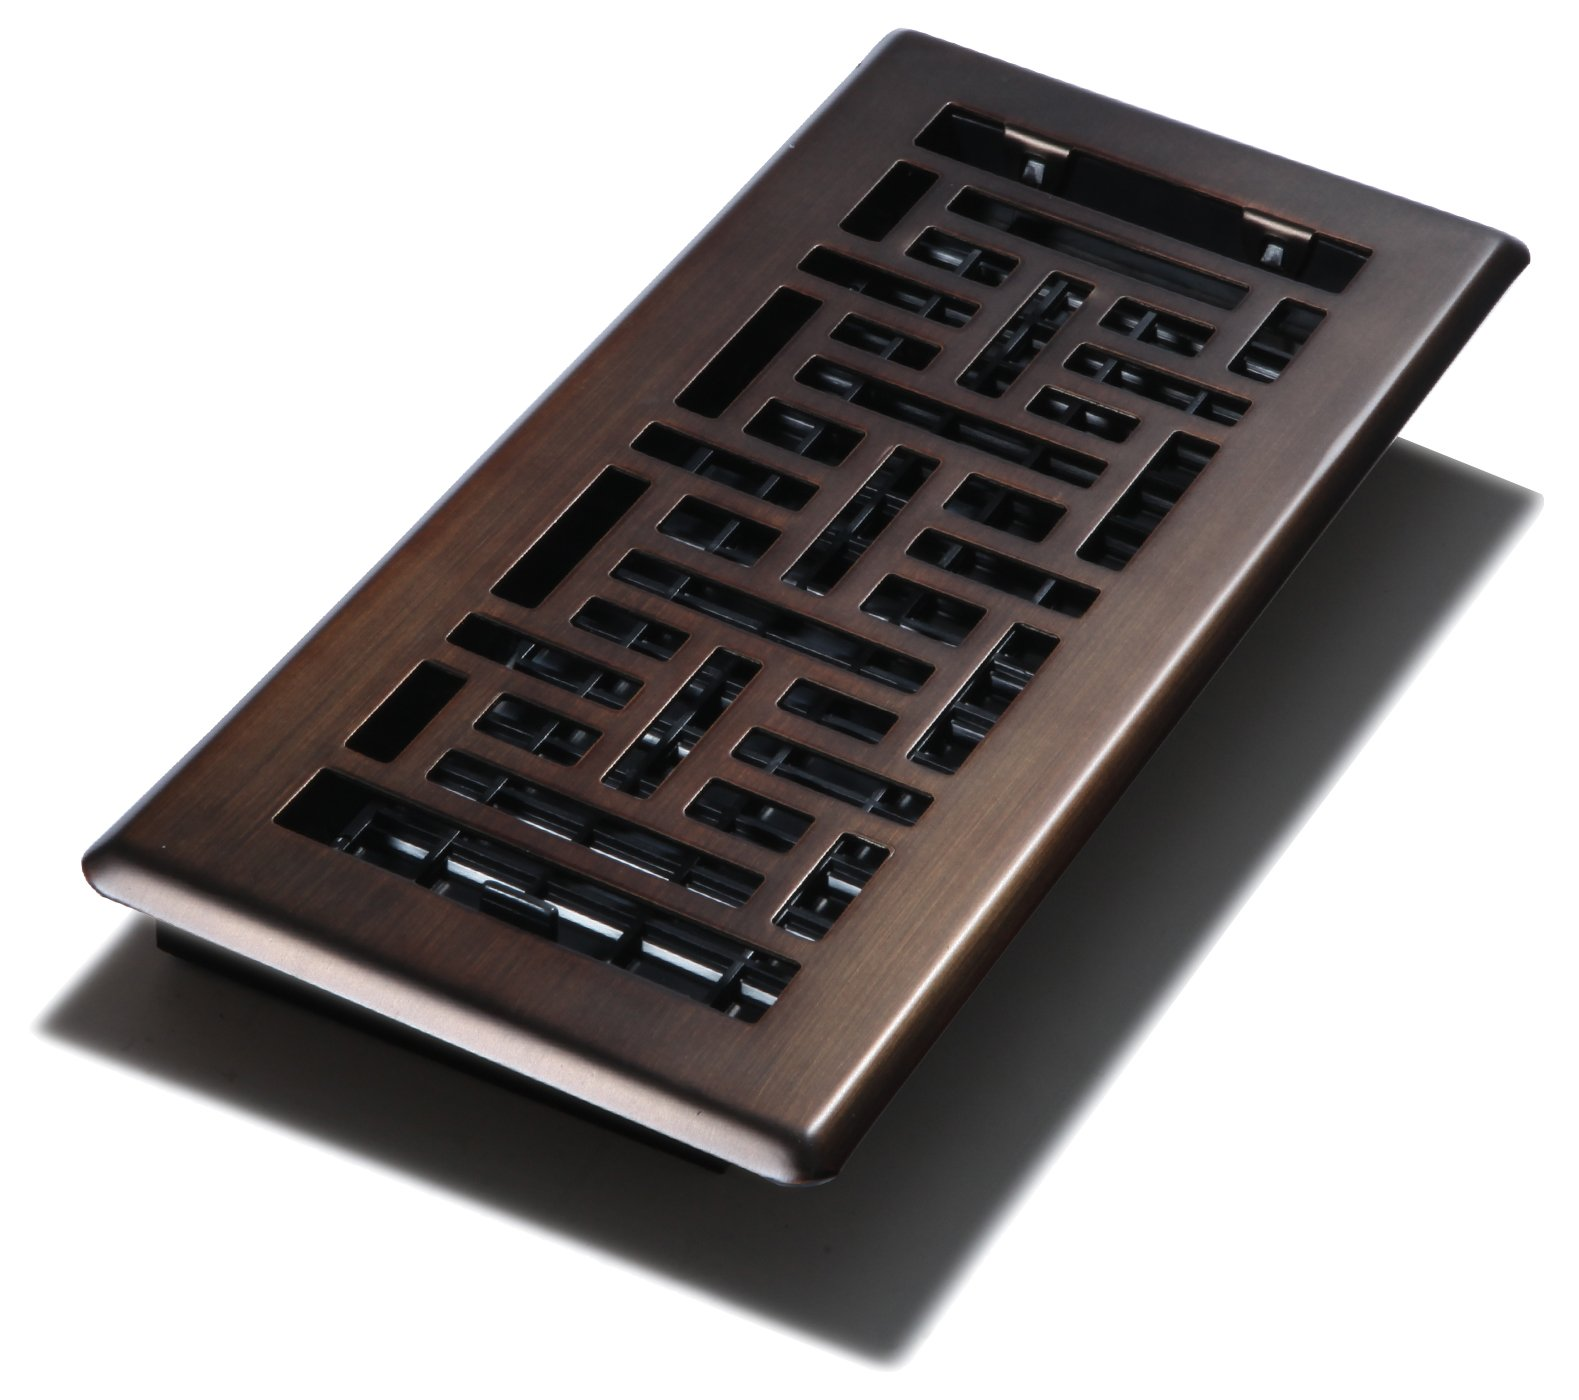 Decor Grates AJH410-RB-8 AJH410-RB-8 Oriental Floor Register, Rubbed Bronze, 4-Inch by 10-Inch, 8-Pack by Decor Grates